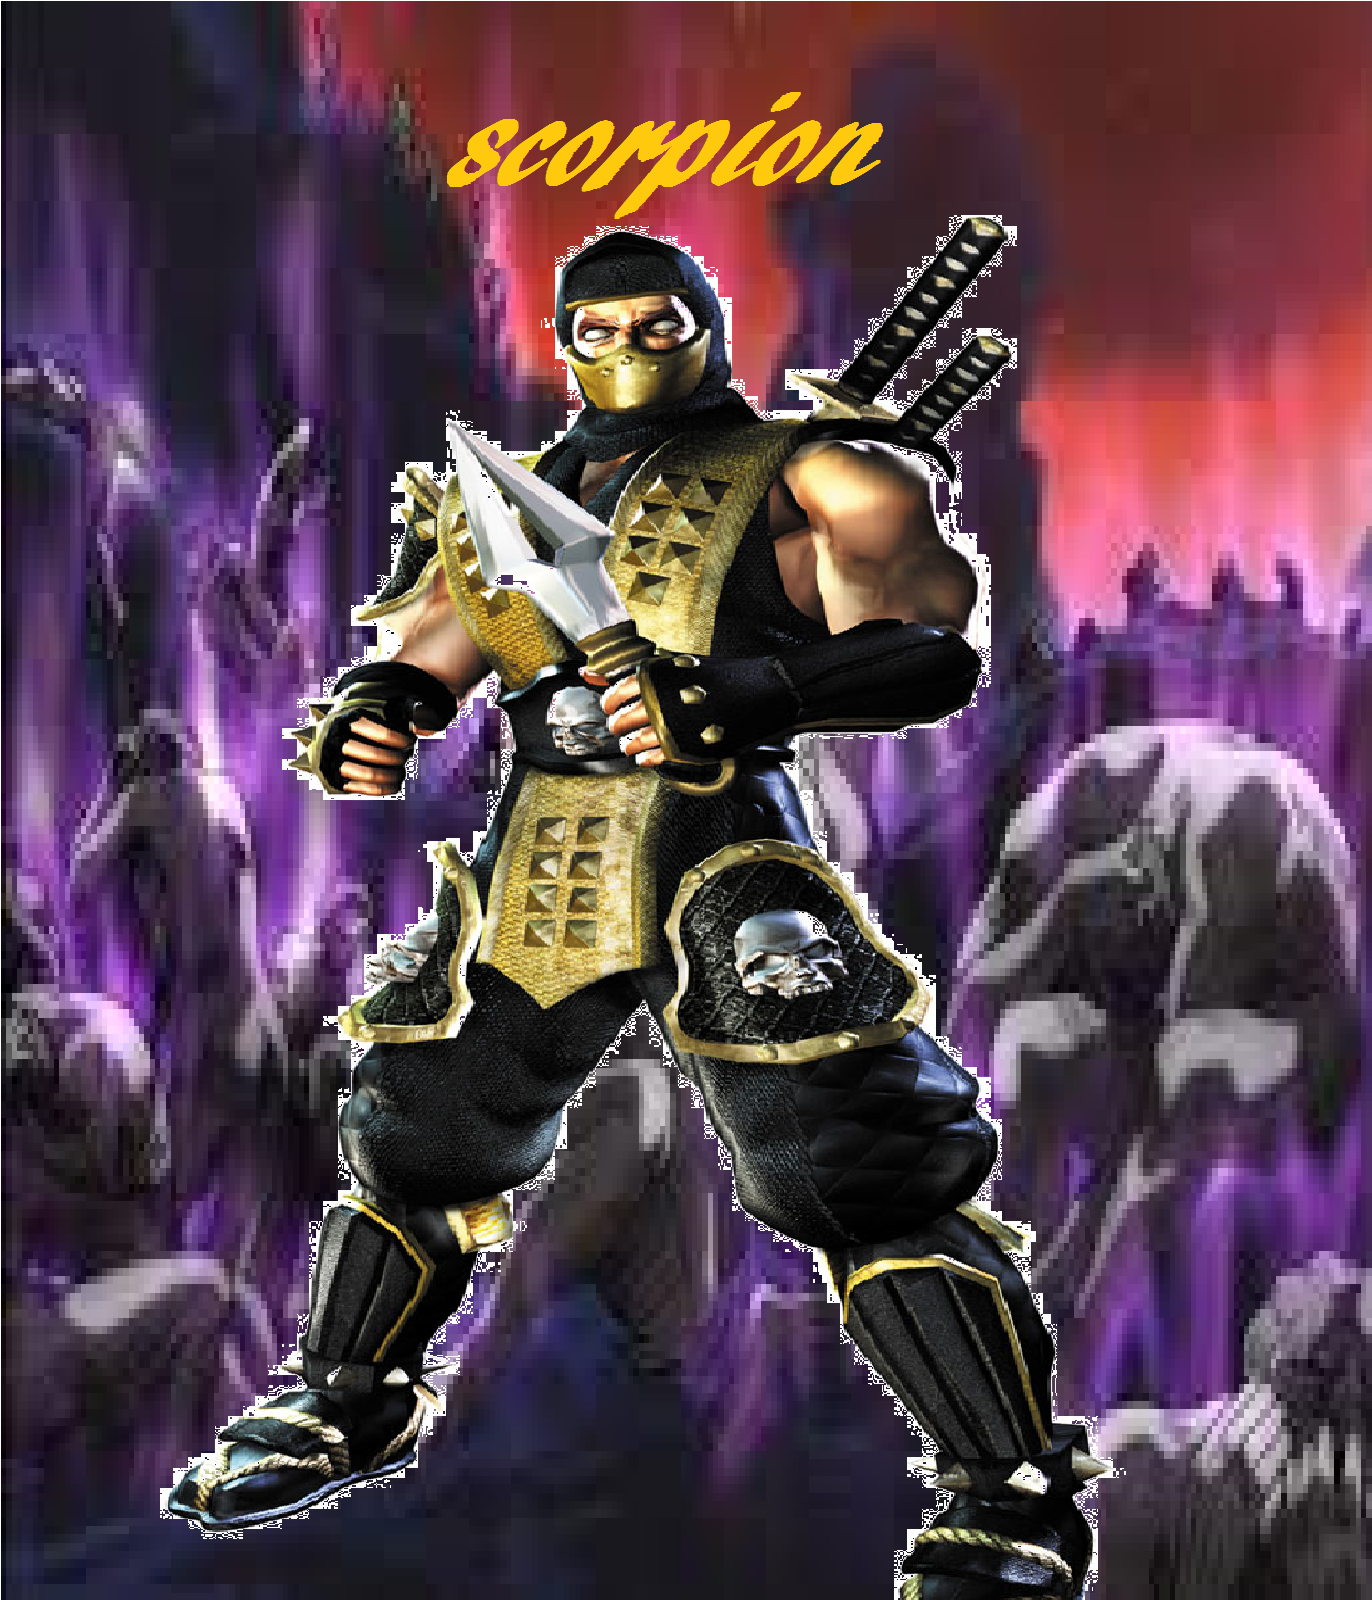 Scorpion infernopng 1372x1600